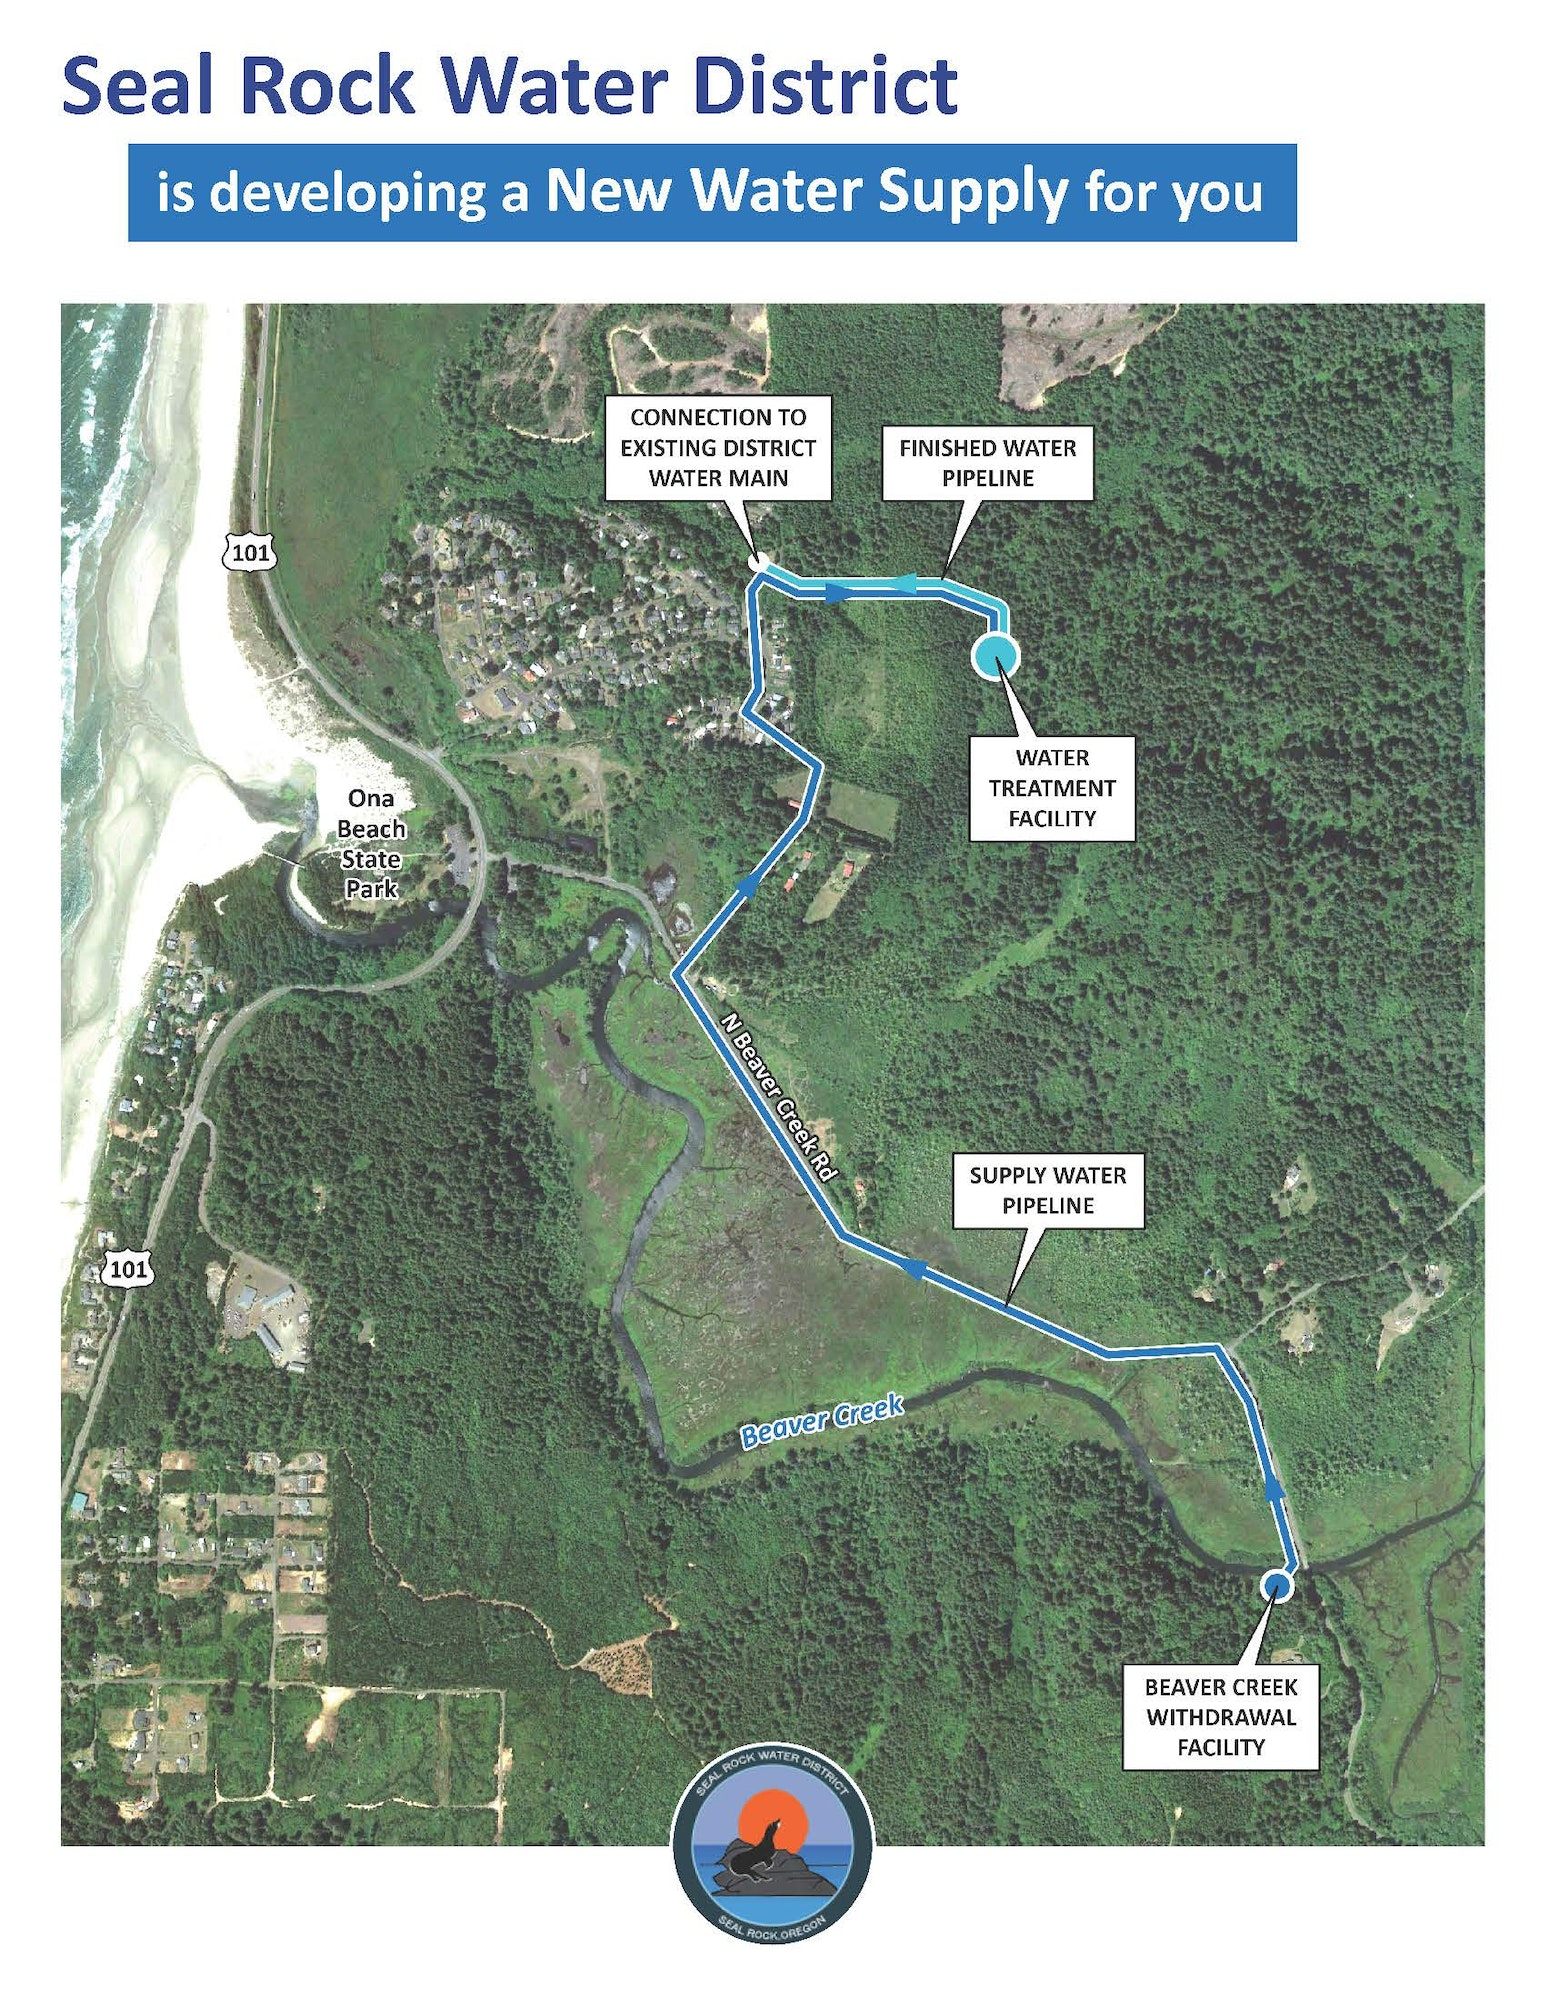 Map showing route of new water supply through Beaver Creek